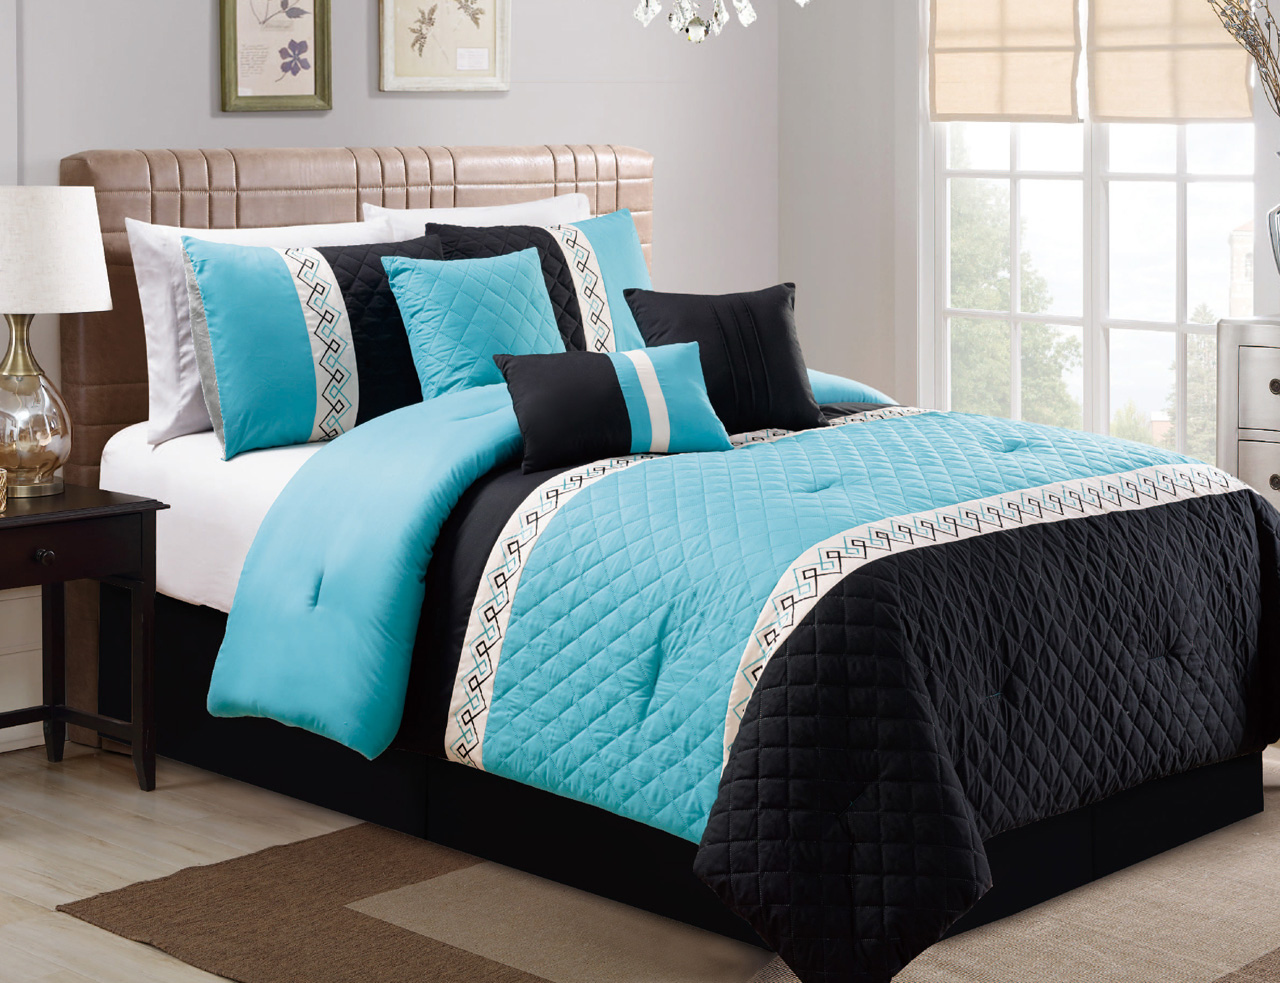 Mainstays Ombre Coordinated Bedding Set With Bedskirt Bed In A Bag - Black and teal comforter sets